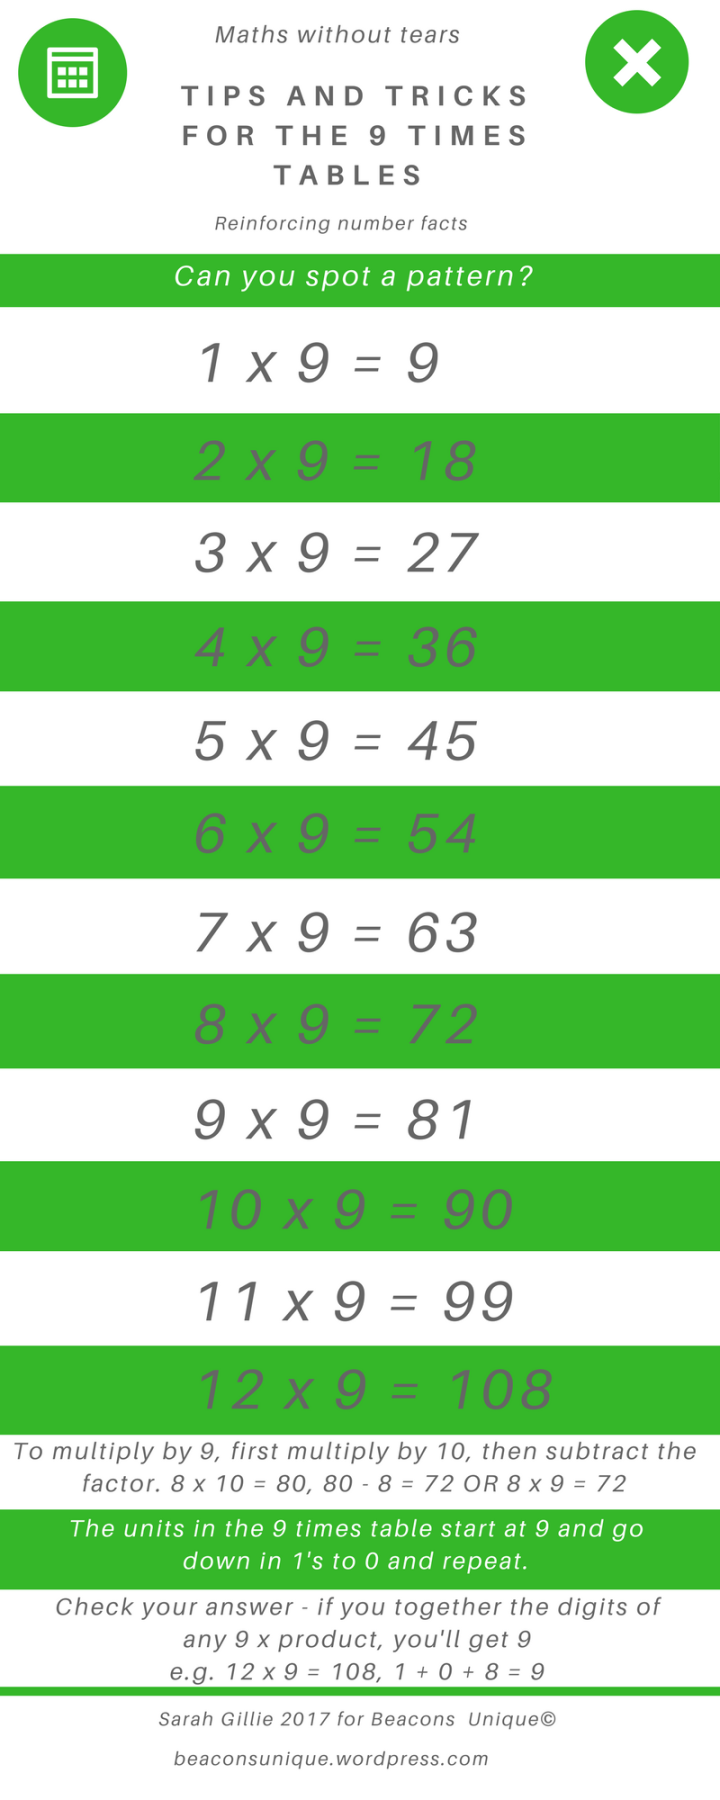 9 times tables tricks